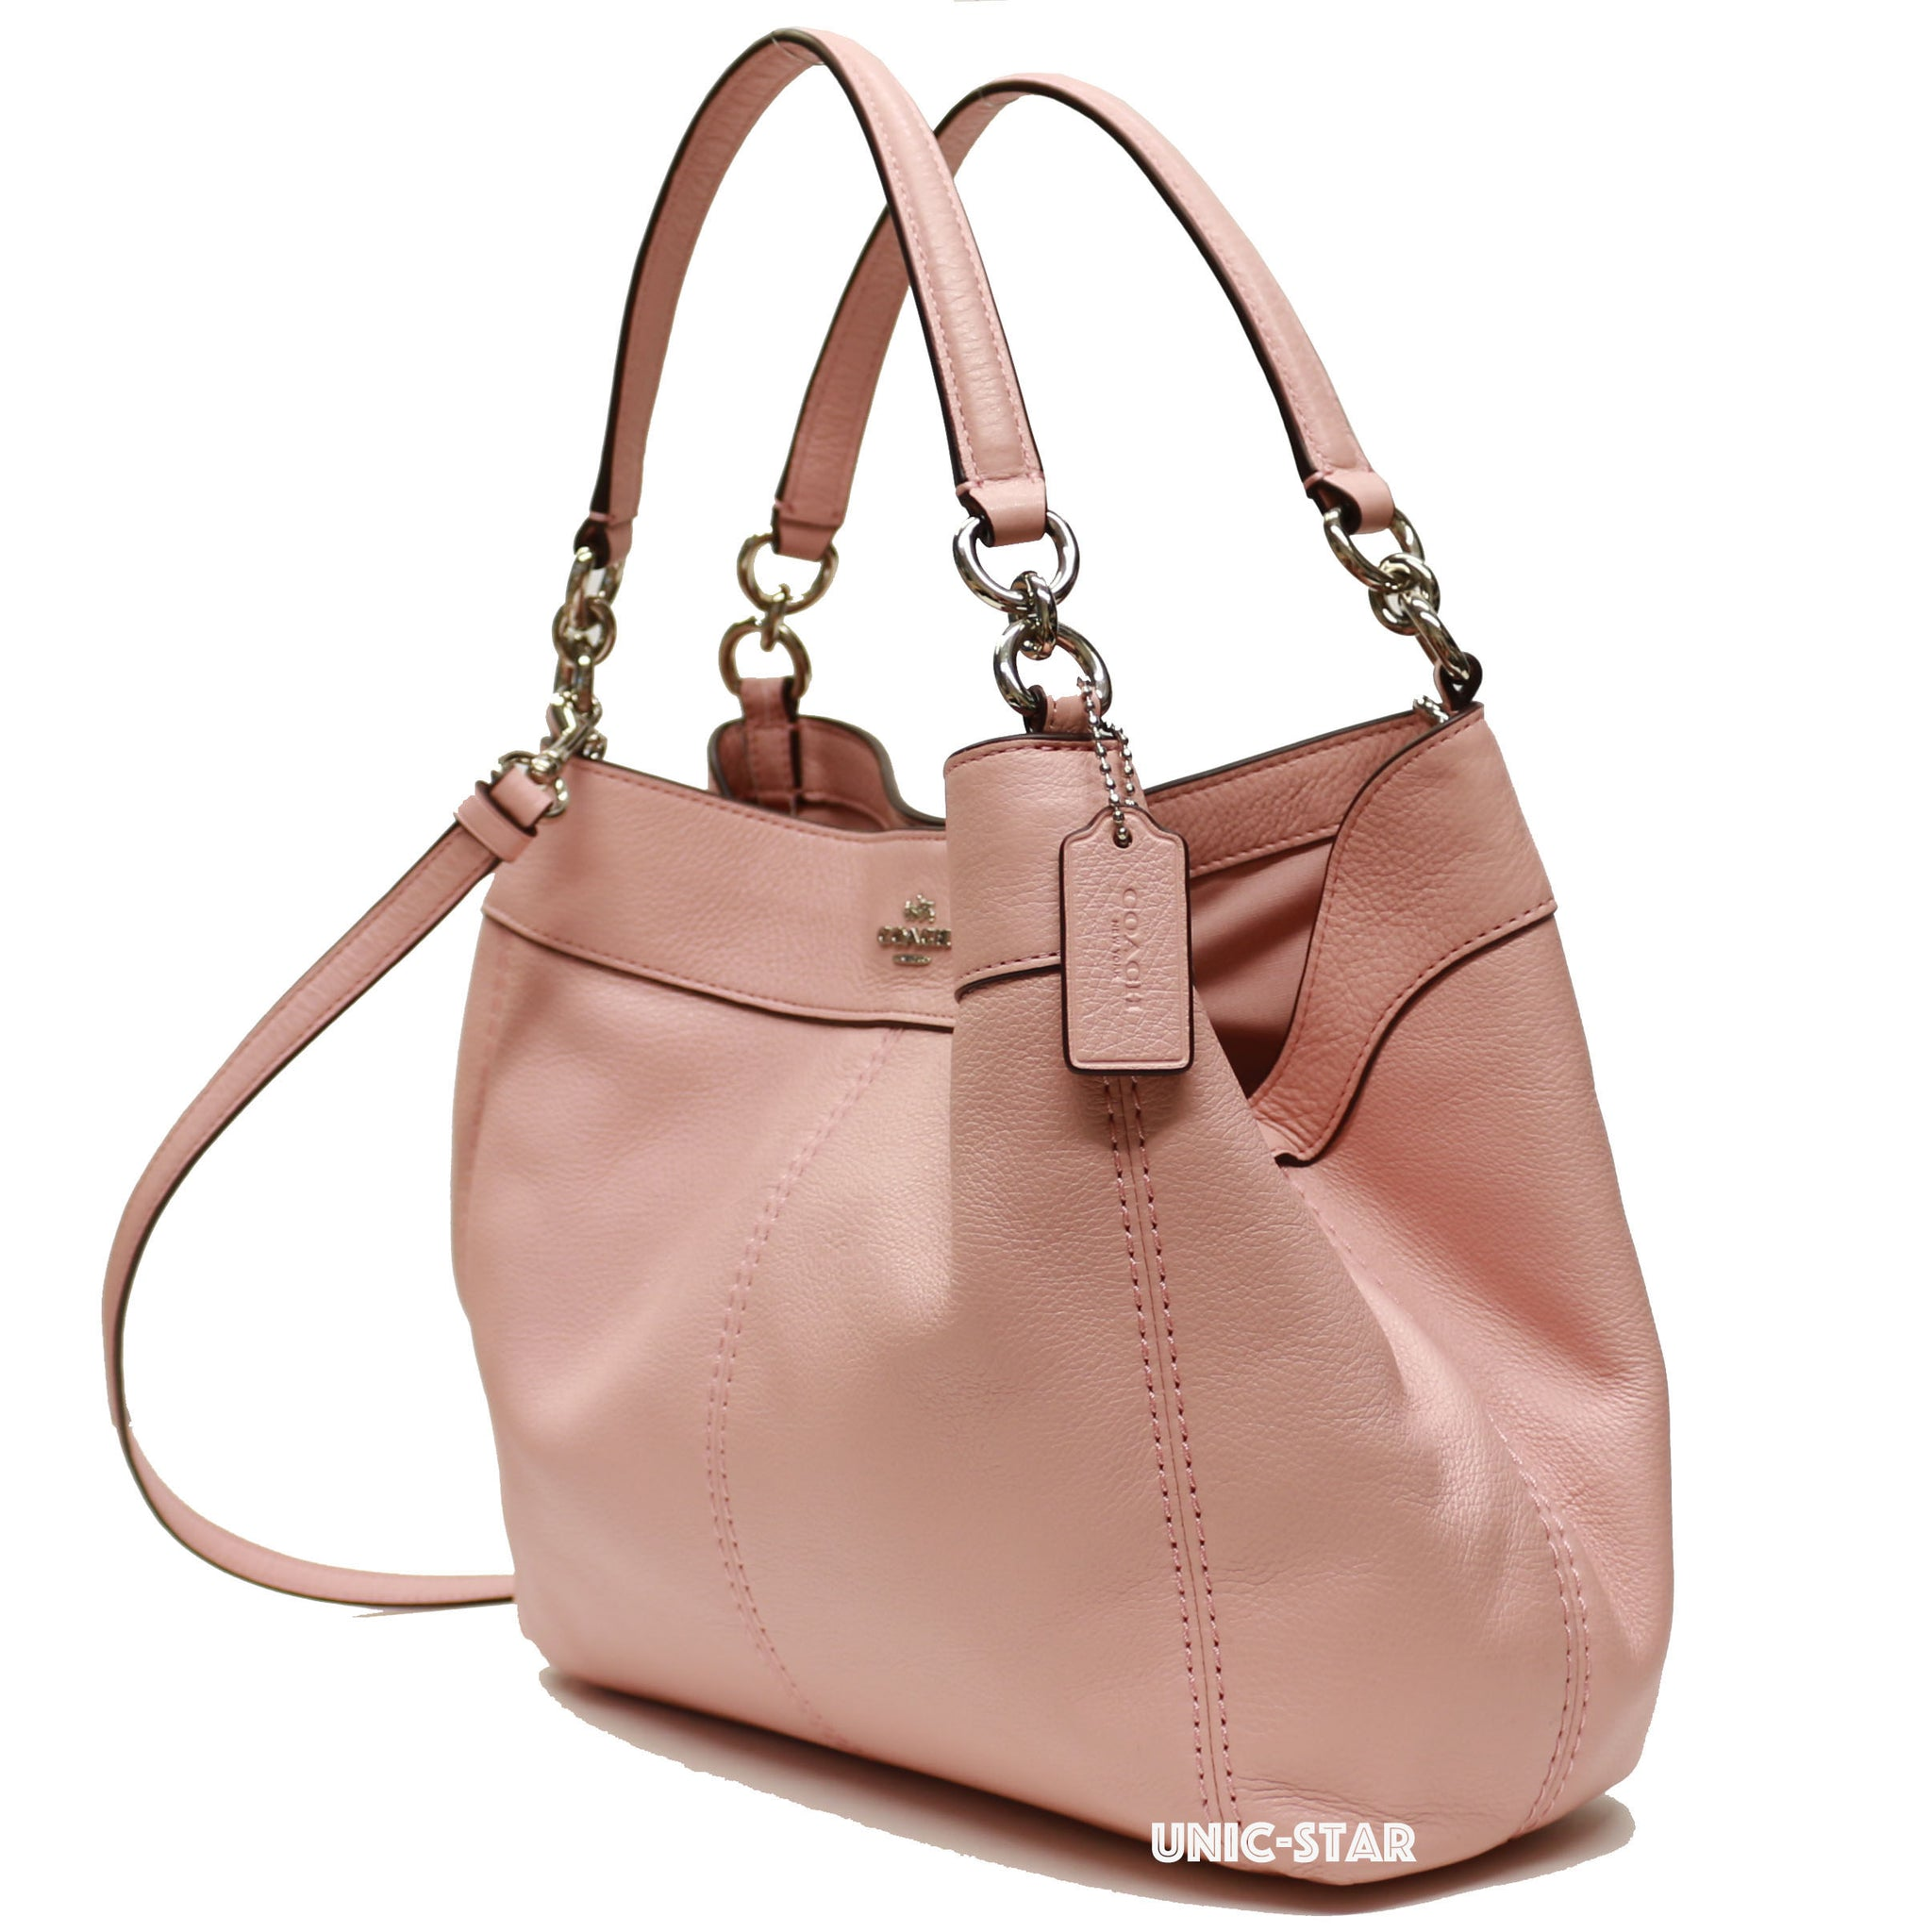 43bbba254e76 Coach F23537 Pebble Leather Small Lexy Shoulder Bag- Blush 2 – unic-star